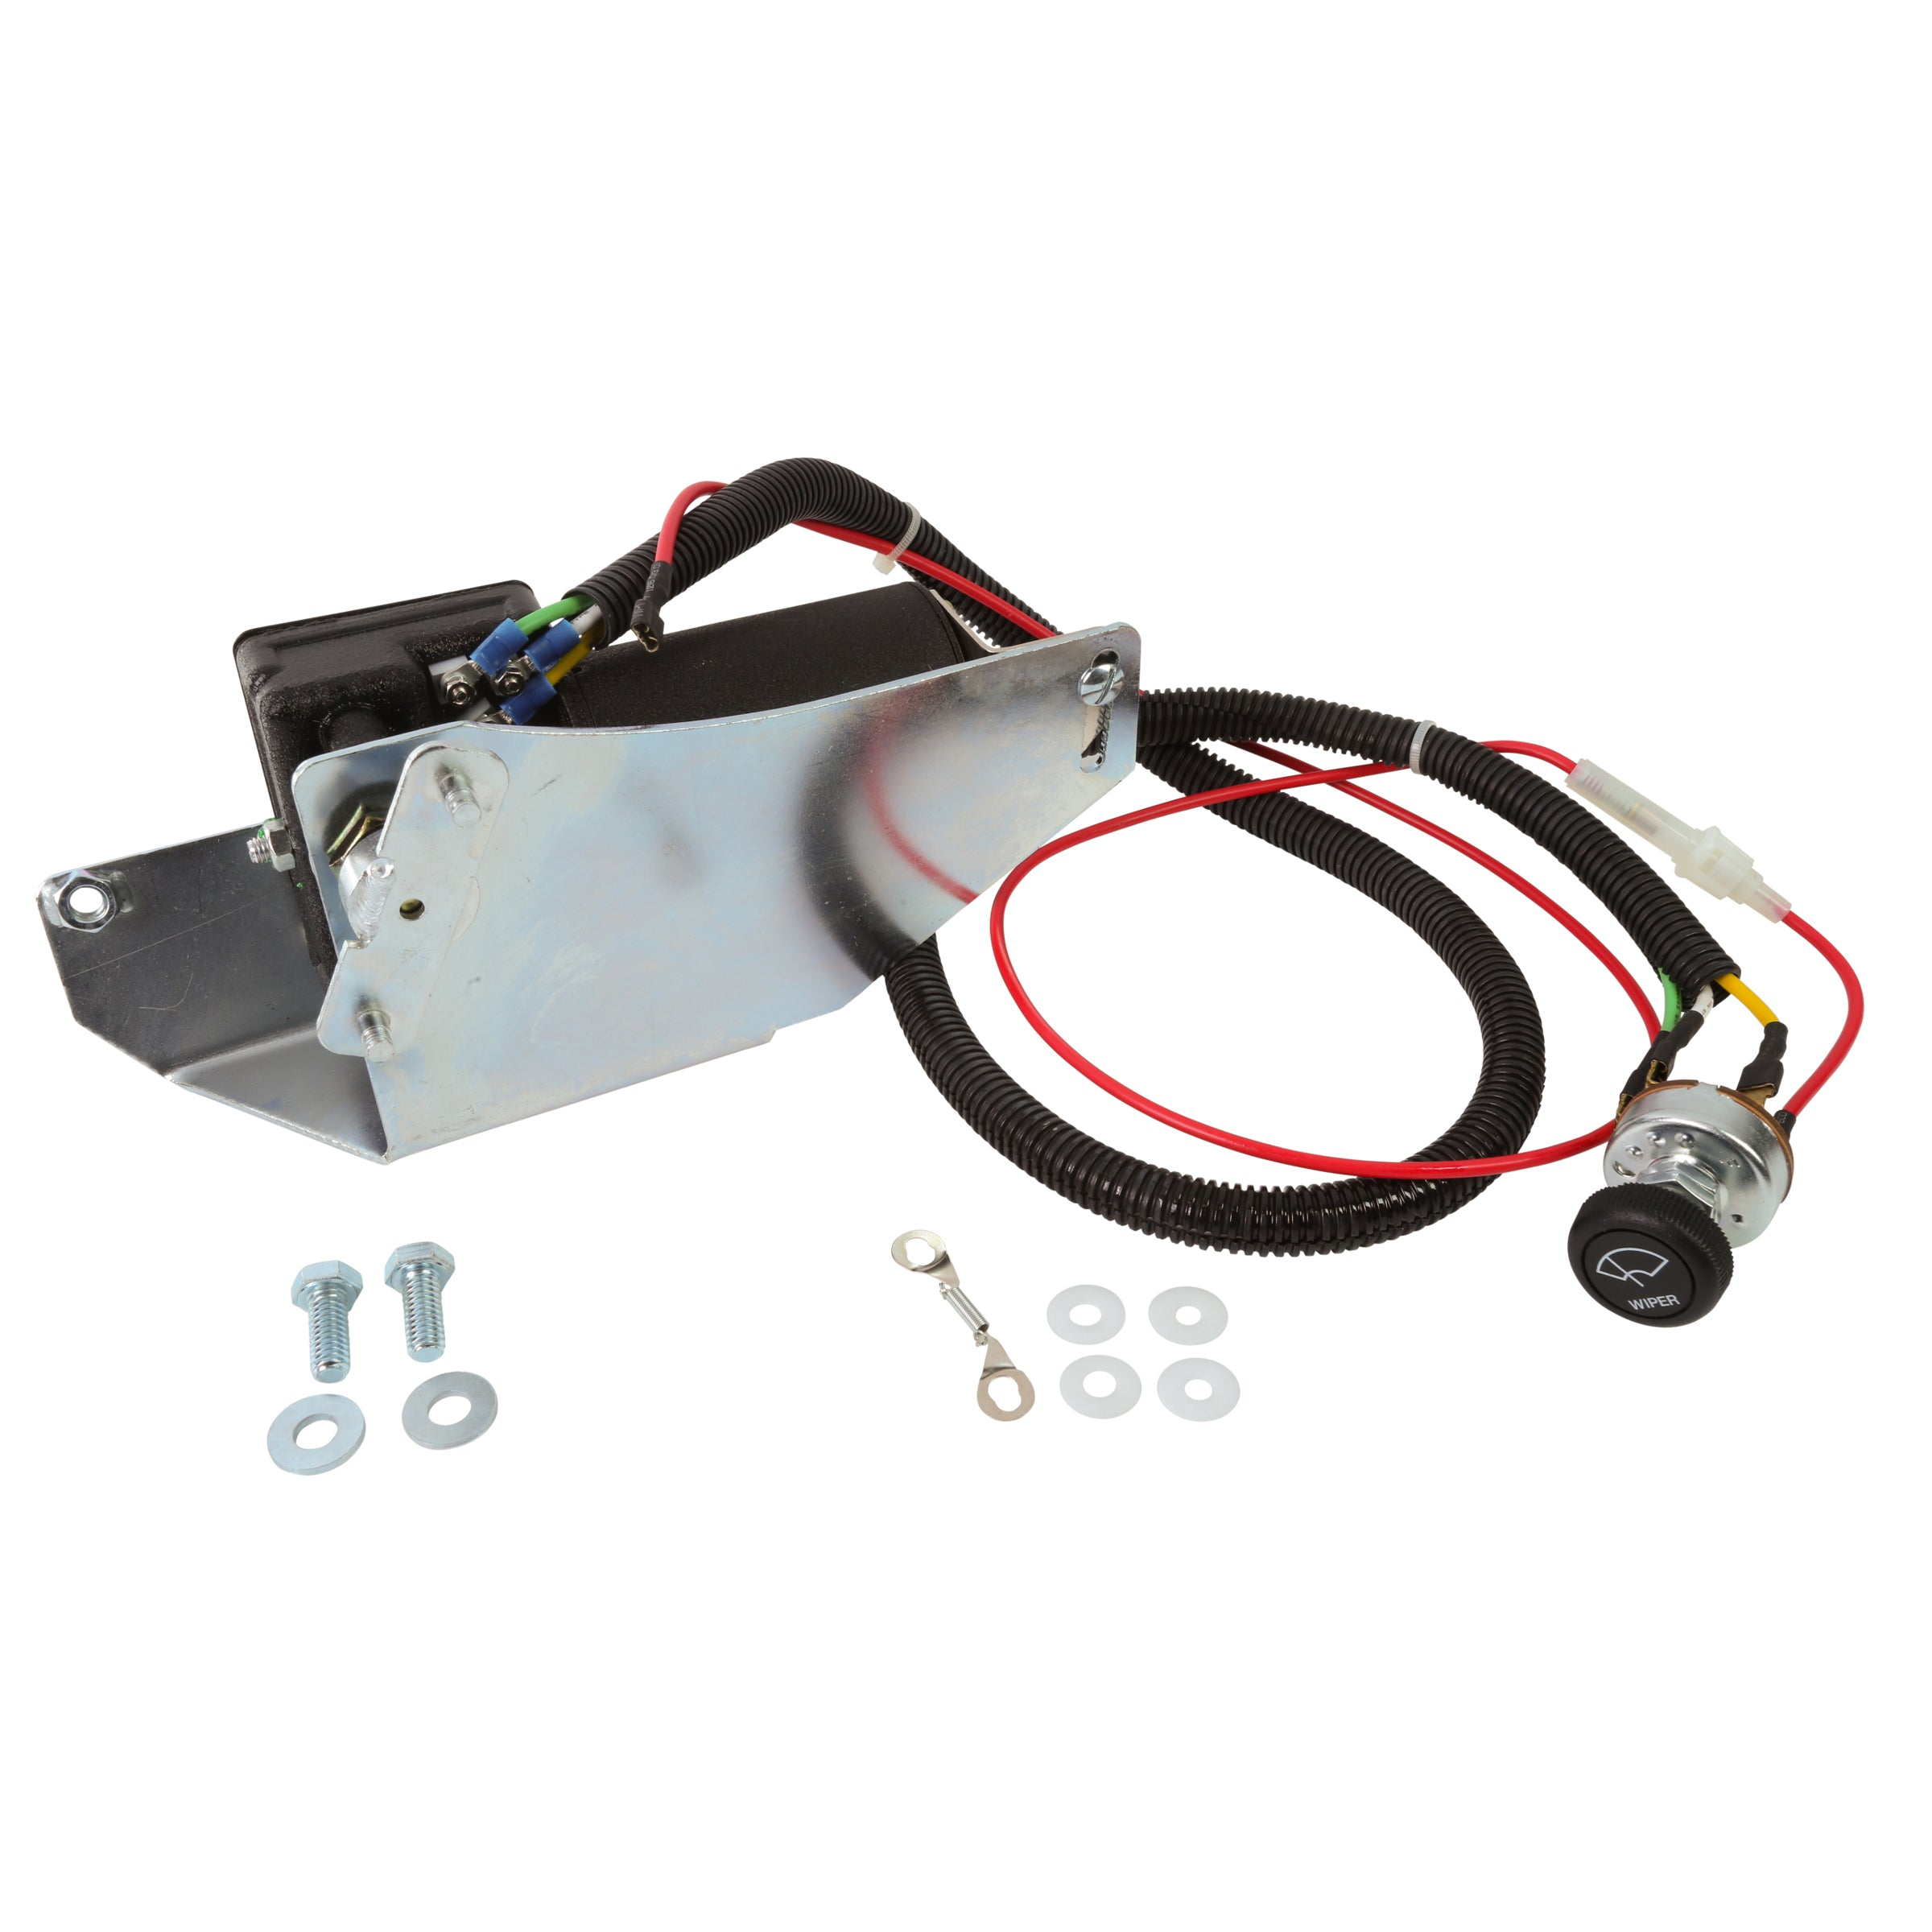 Electric Wiper Motor Conversion Kit • 1940 Passenger 6 Volt